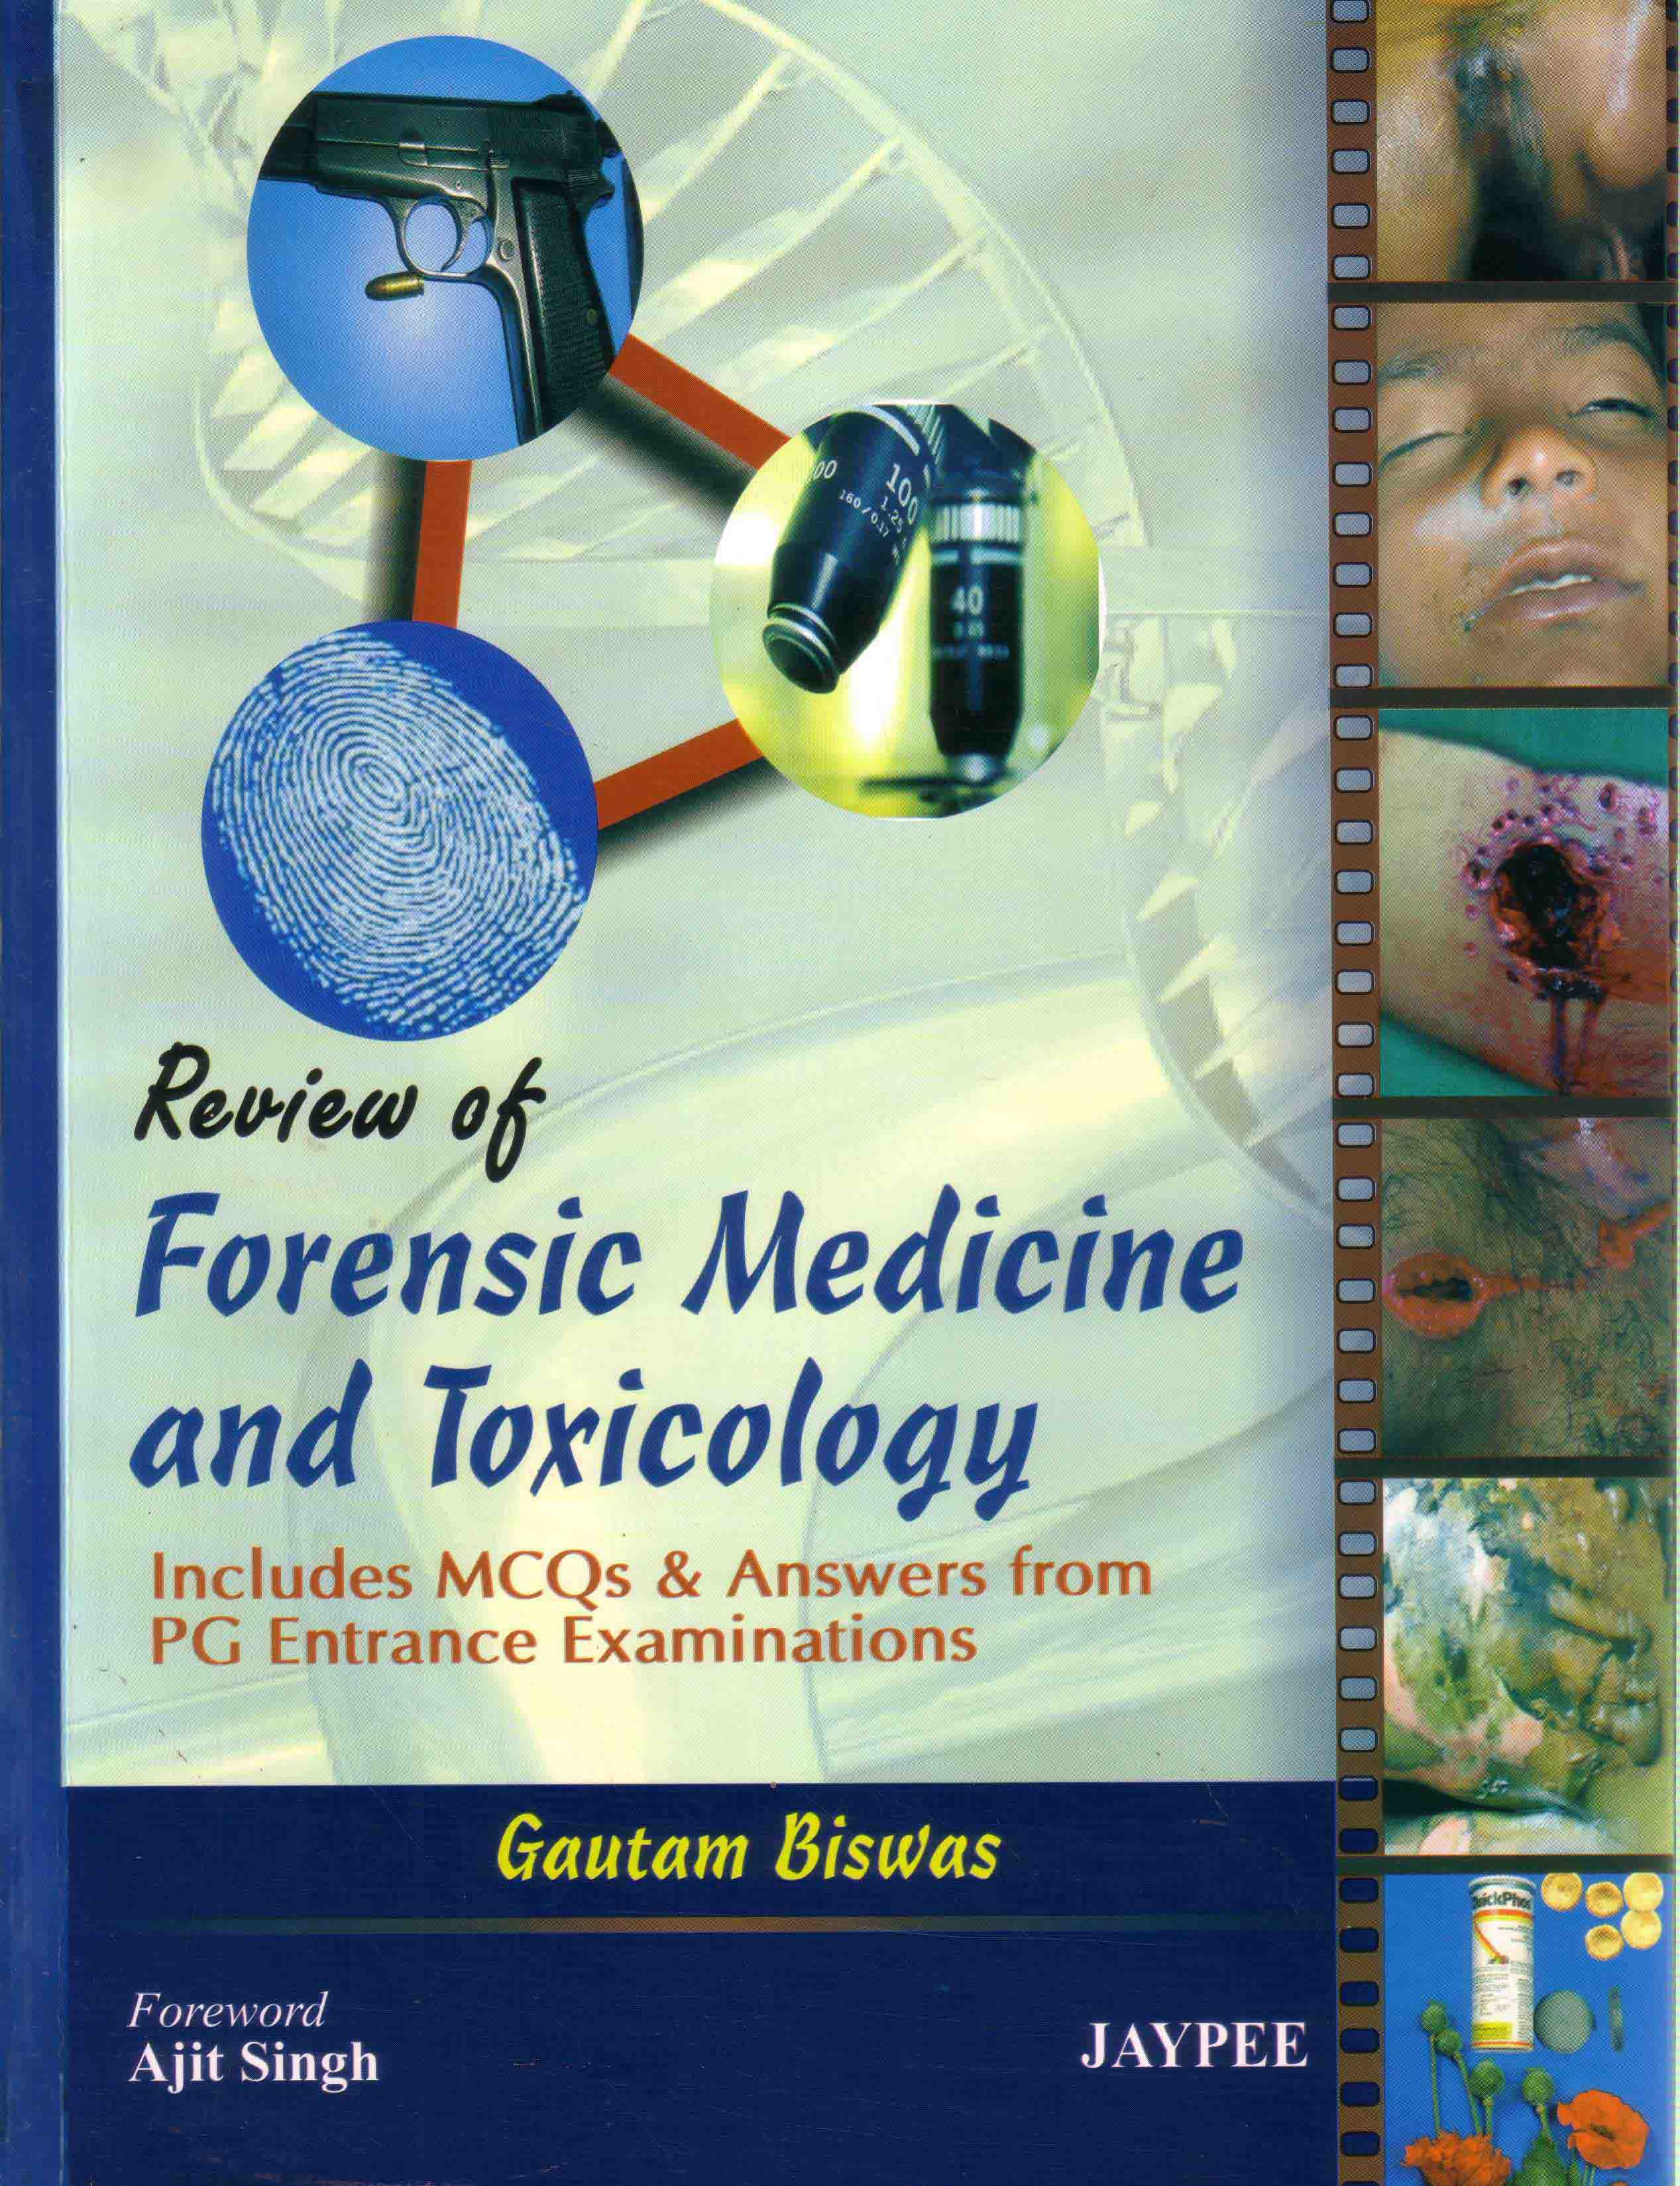 technical books on forensic science and forensic medicine  anil aggrawal u0026 39 s internet journal of